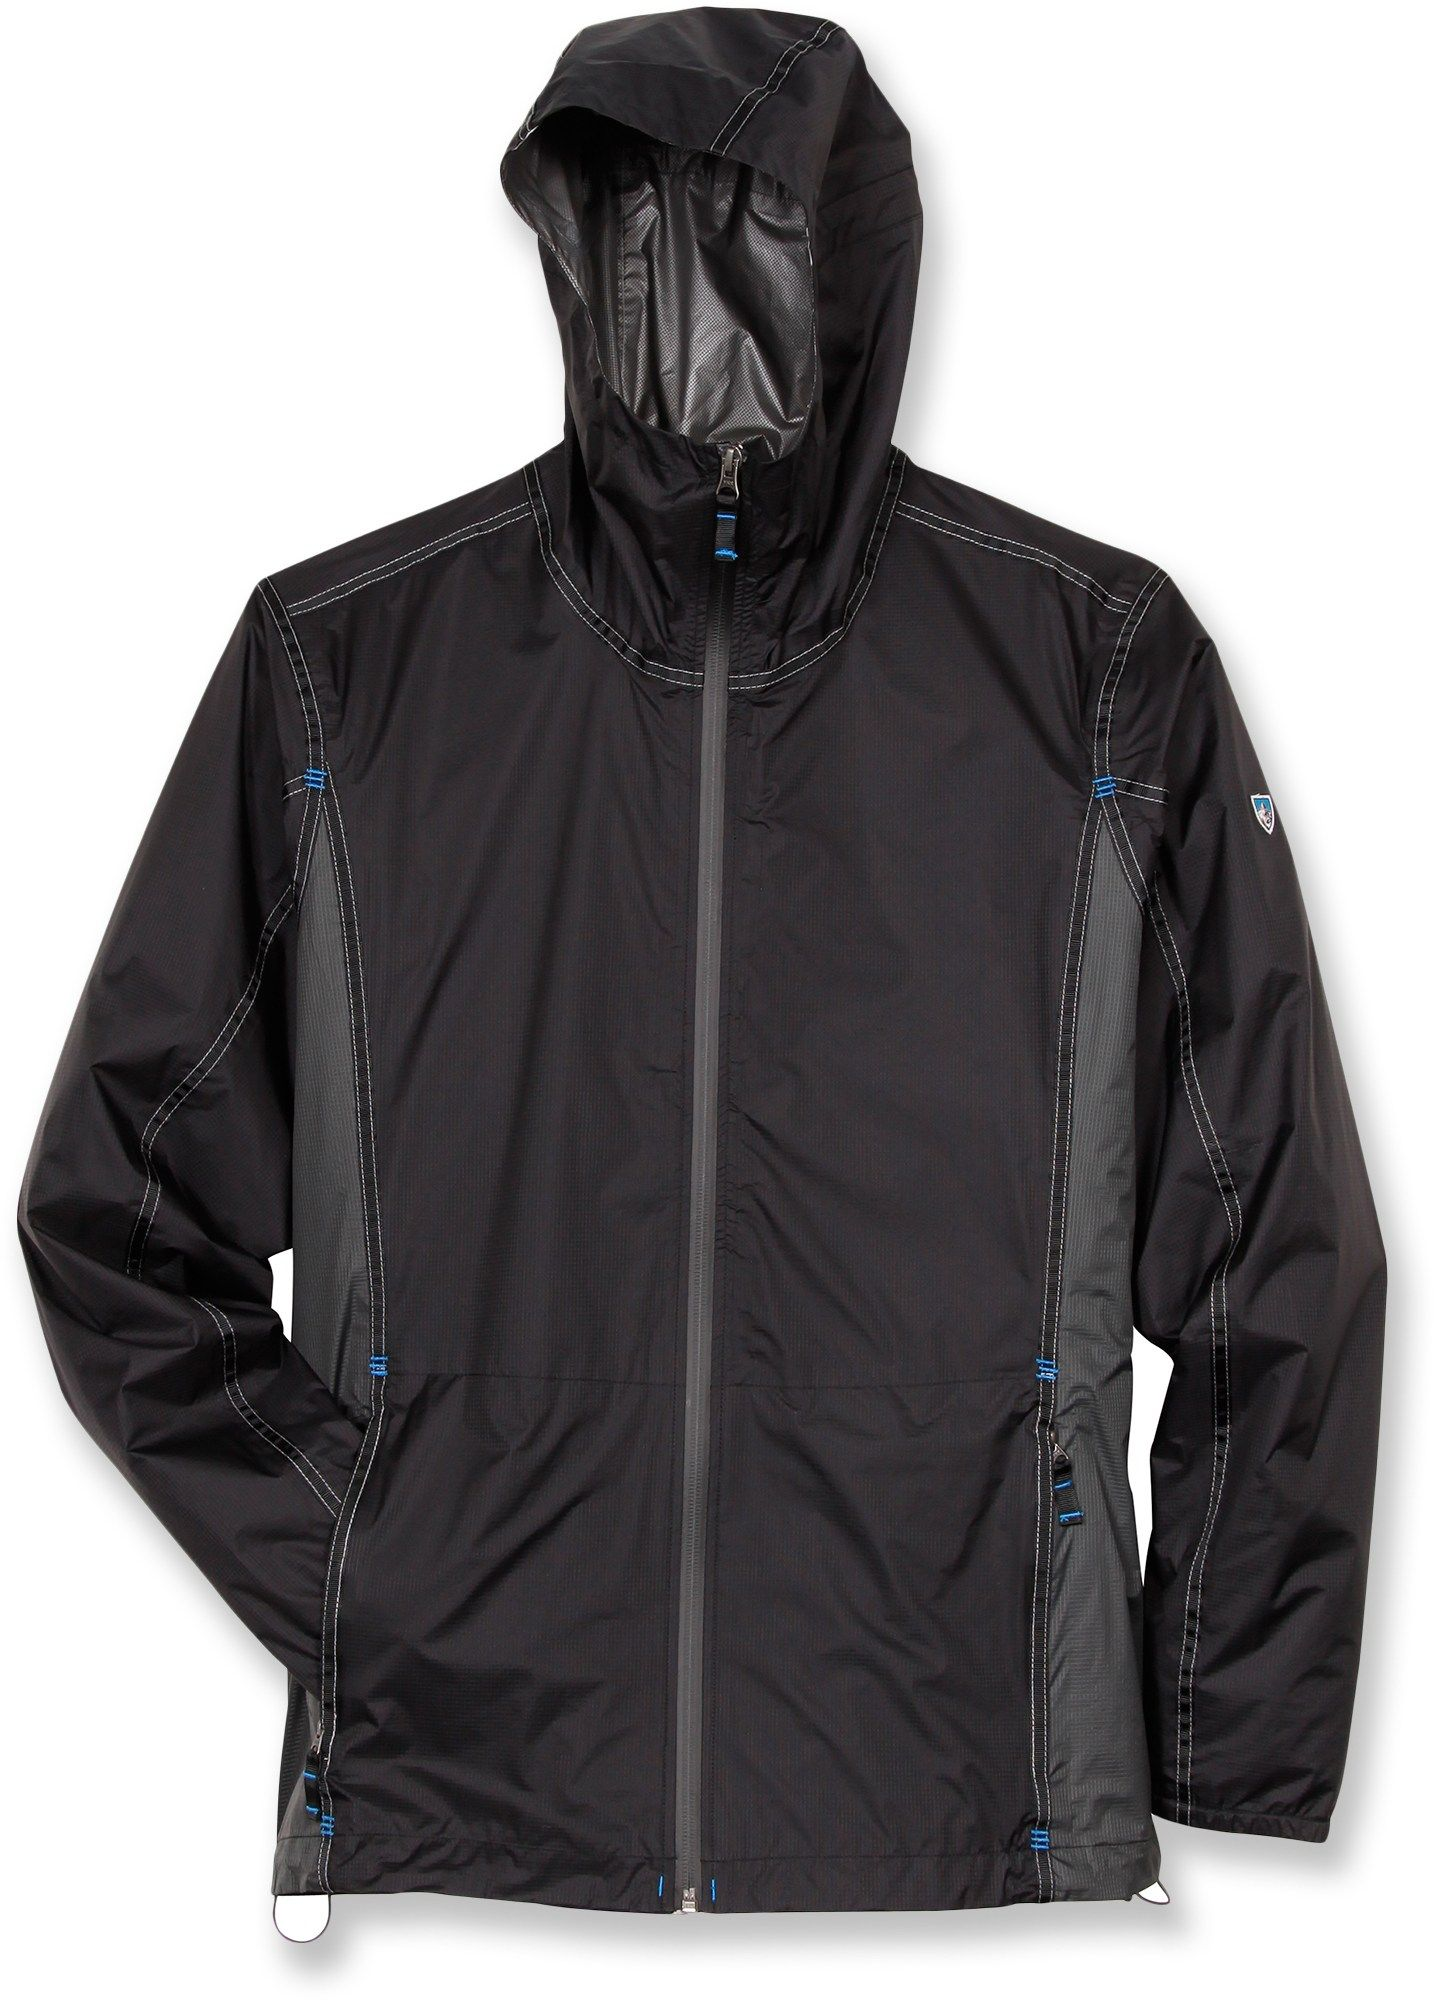 KUHL Parachute Jacket - Men's | REI Co-op | Men's Style ...